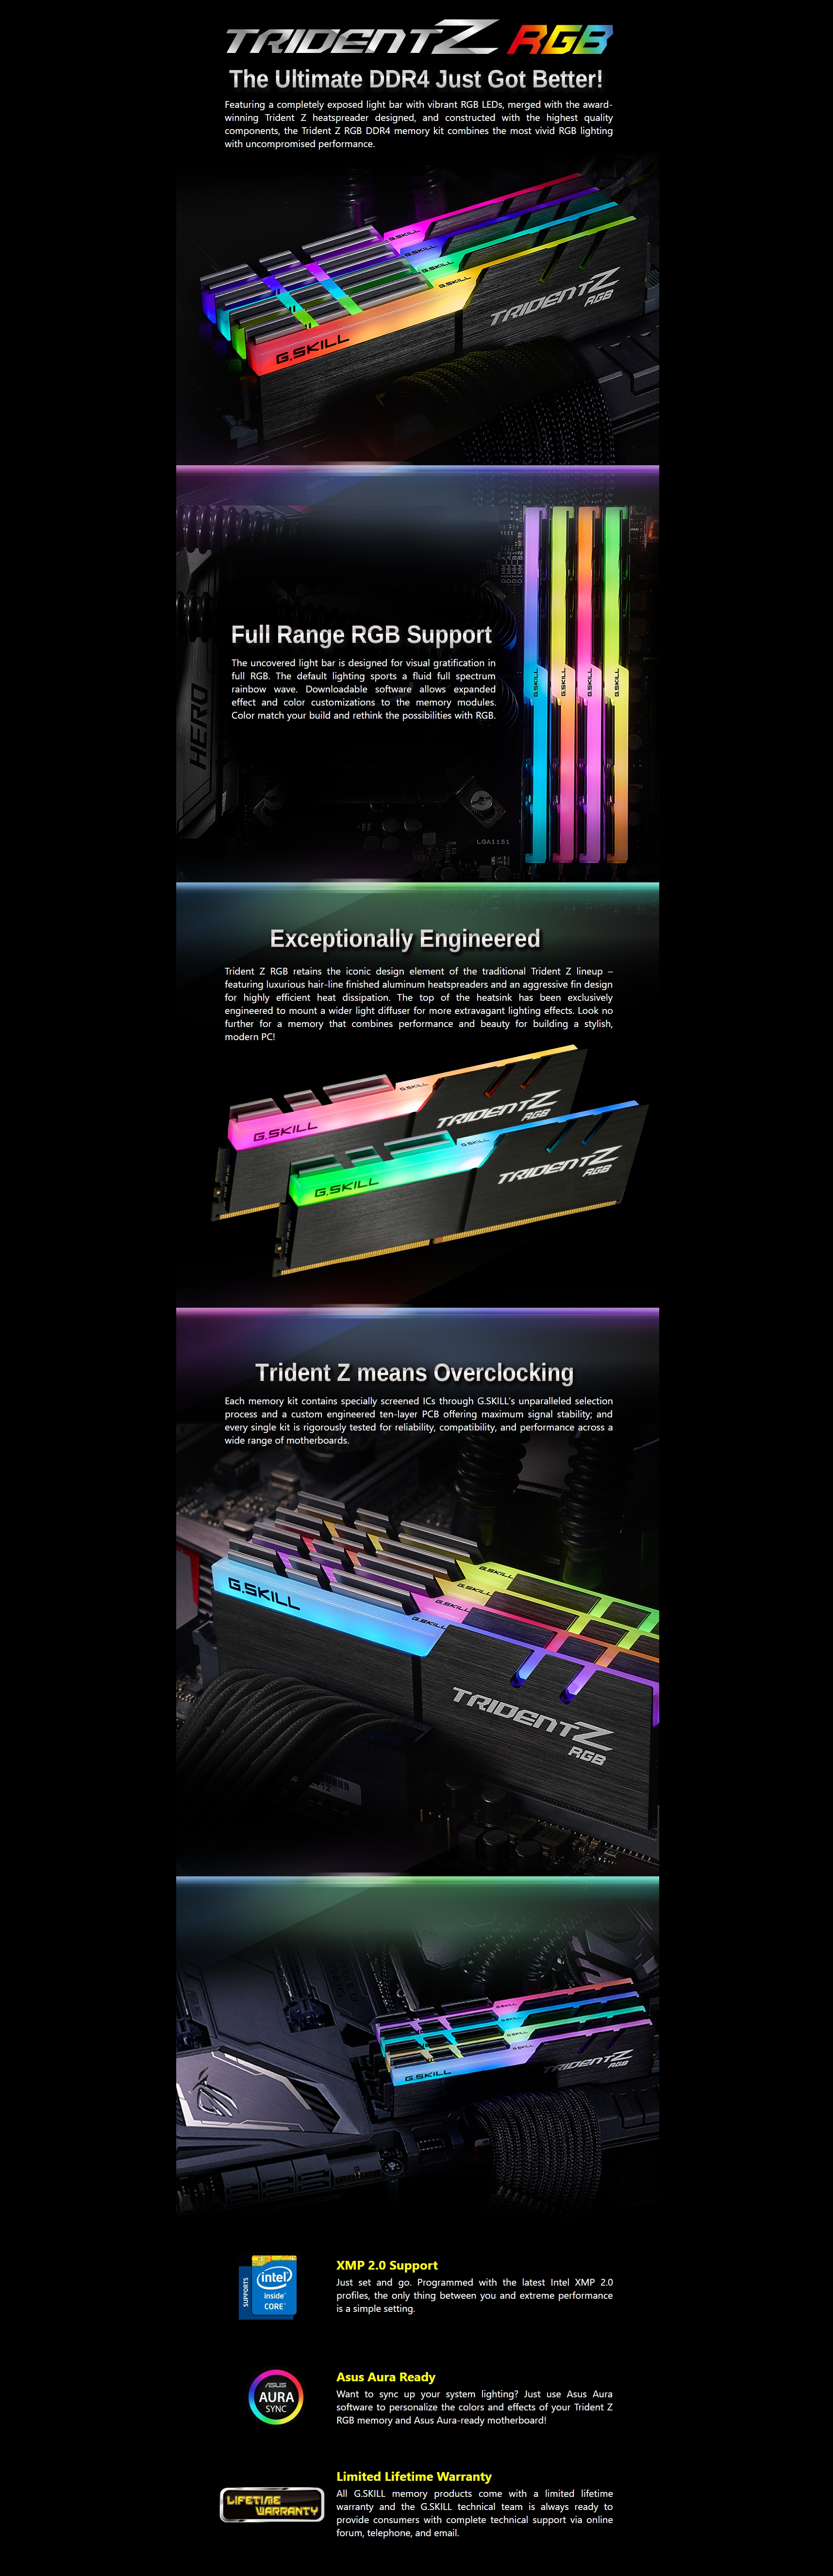 A large marketing image providing additional information about the product G.Skill 32GB Kit (4x8GB) DDR4 Trident Z RGB 2400MHz C15 - Additional alt info not provided